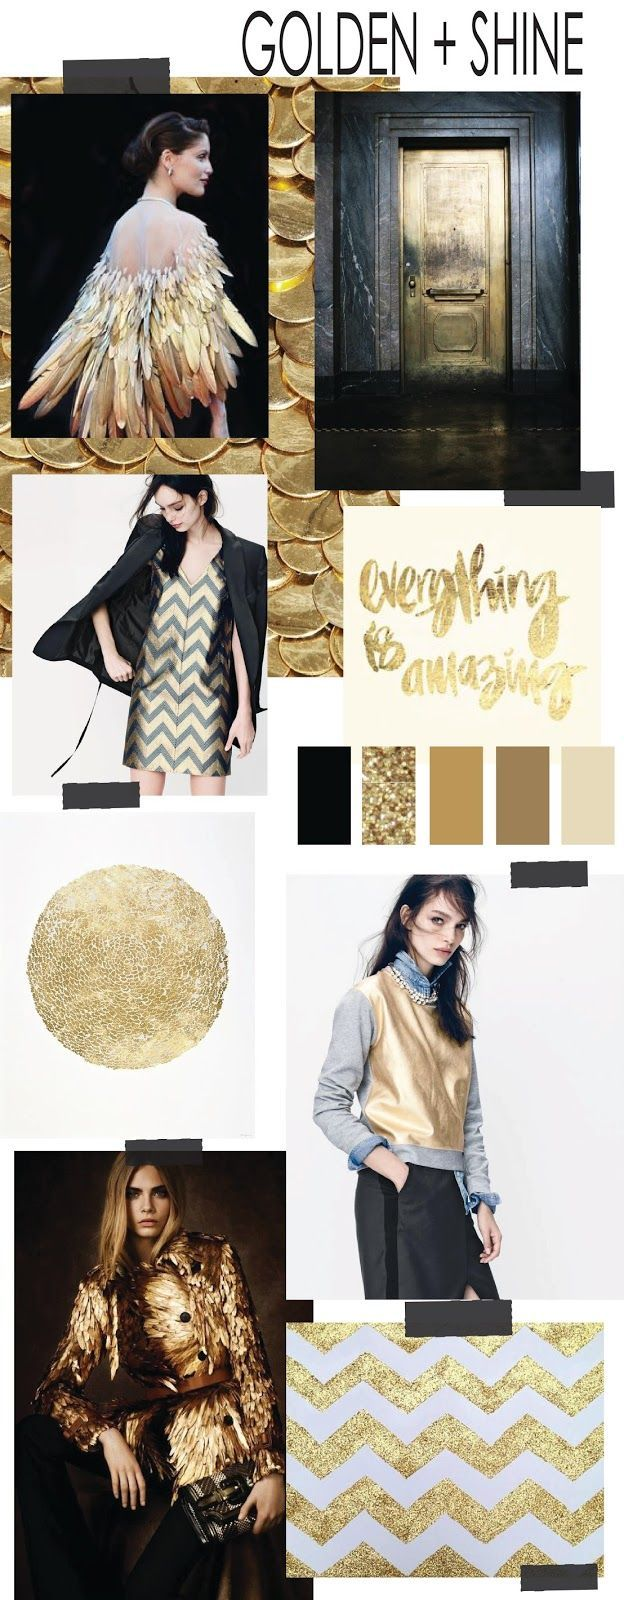 TRENDSPIRATION // GOLDEN + SHINE (FASHION VIGNETTE)